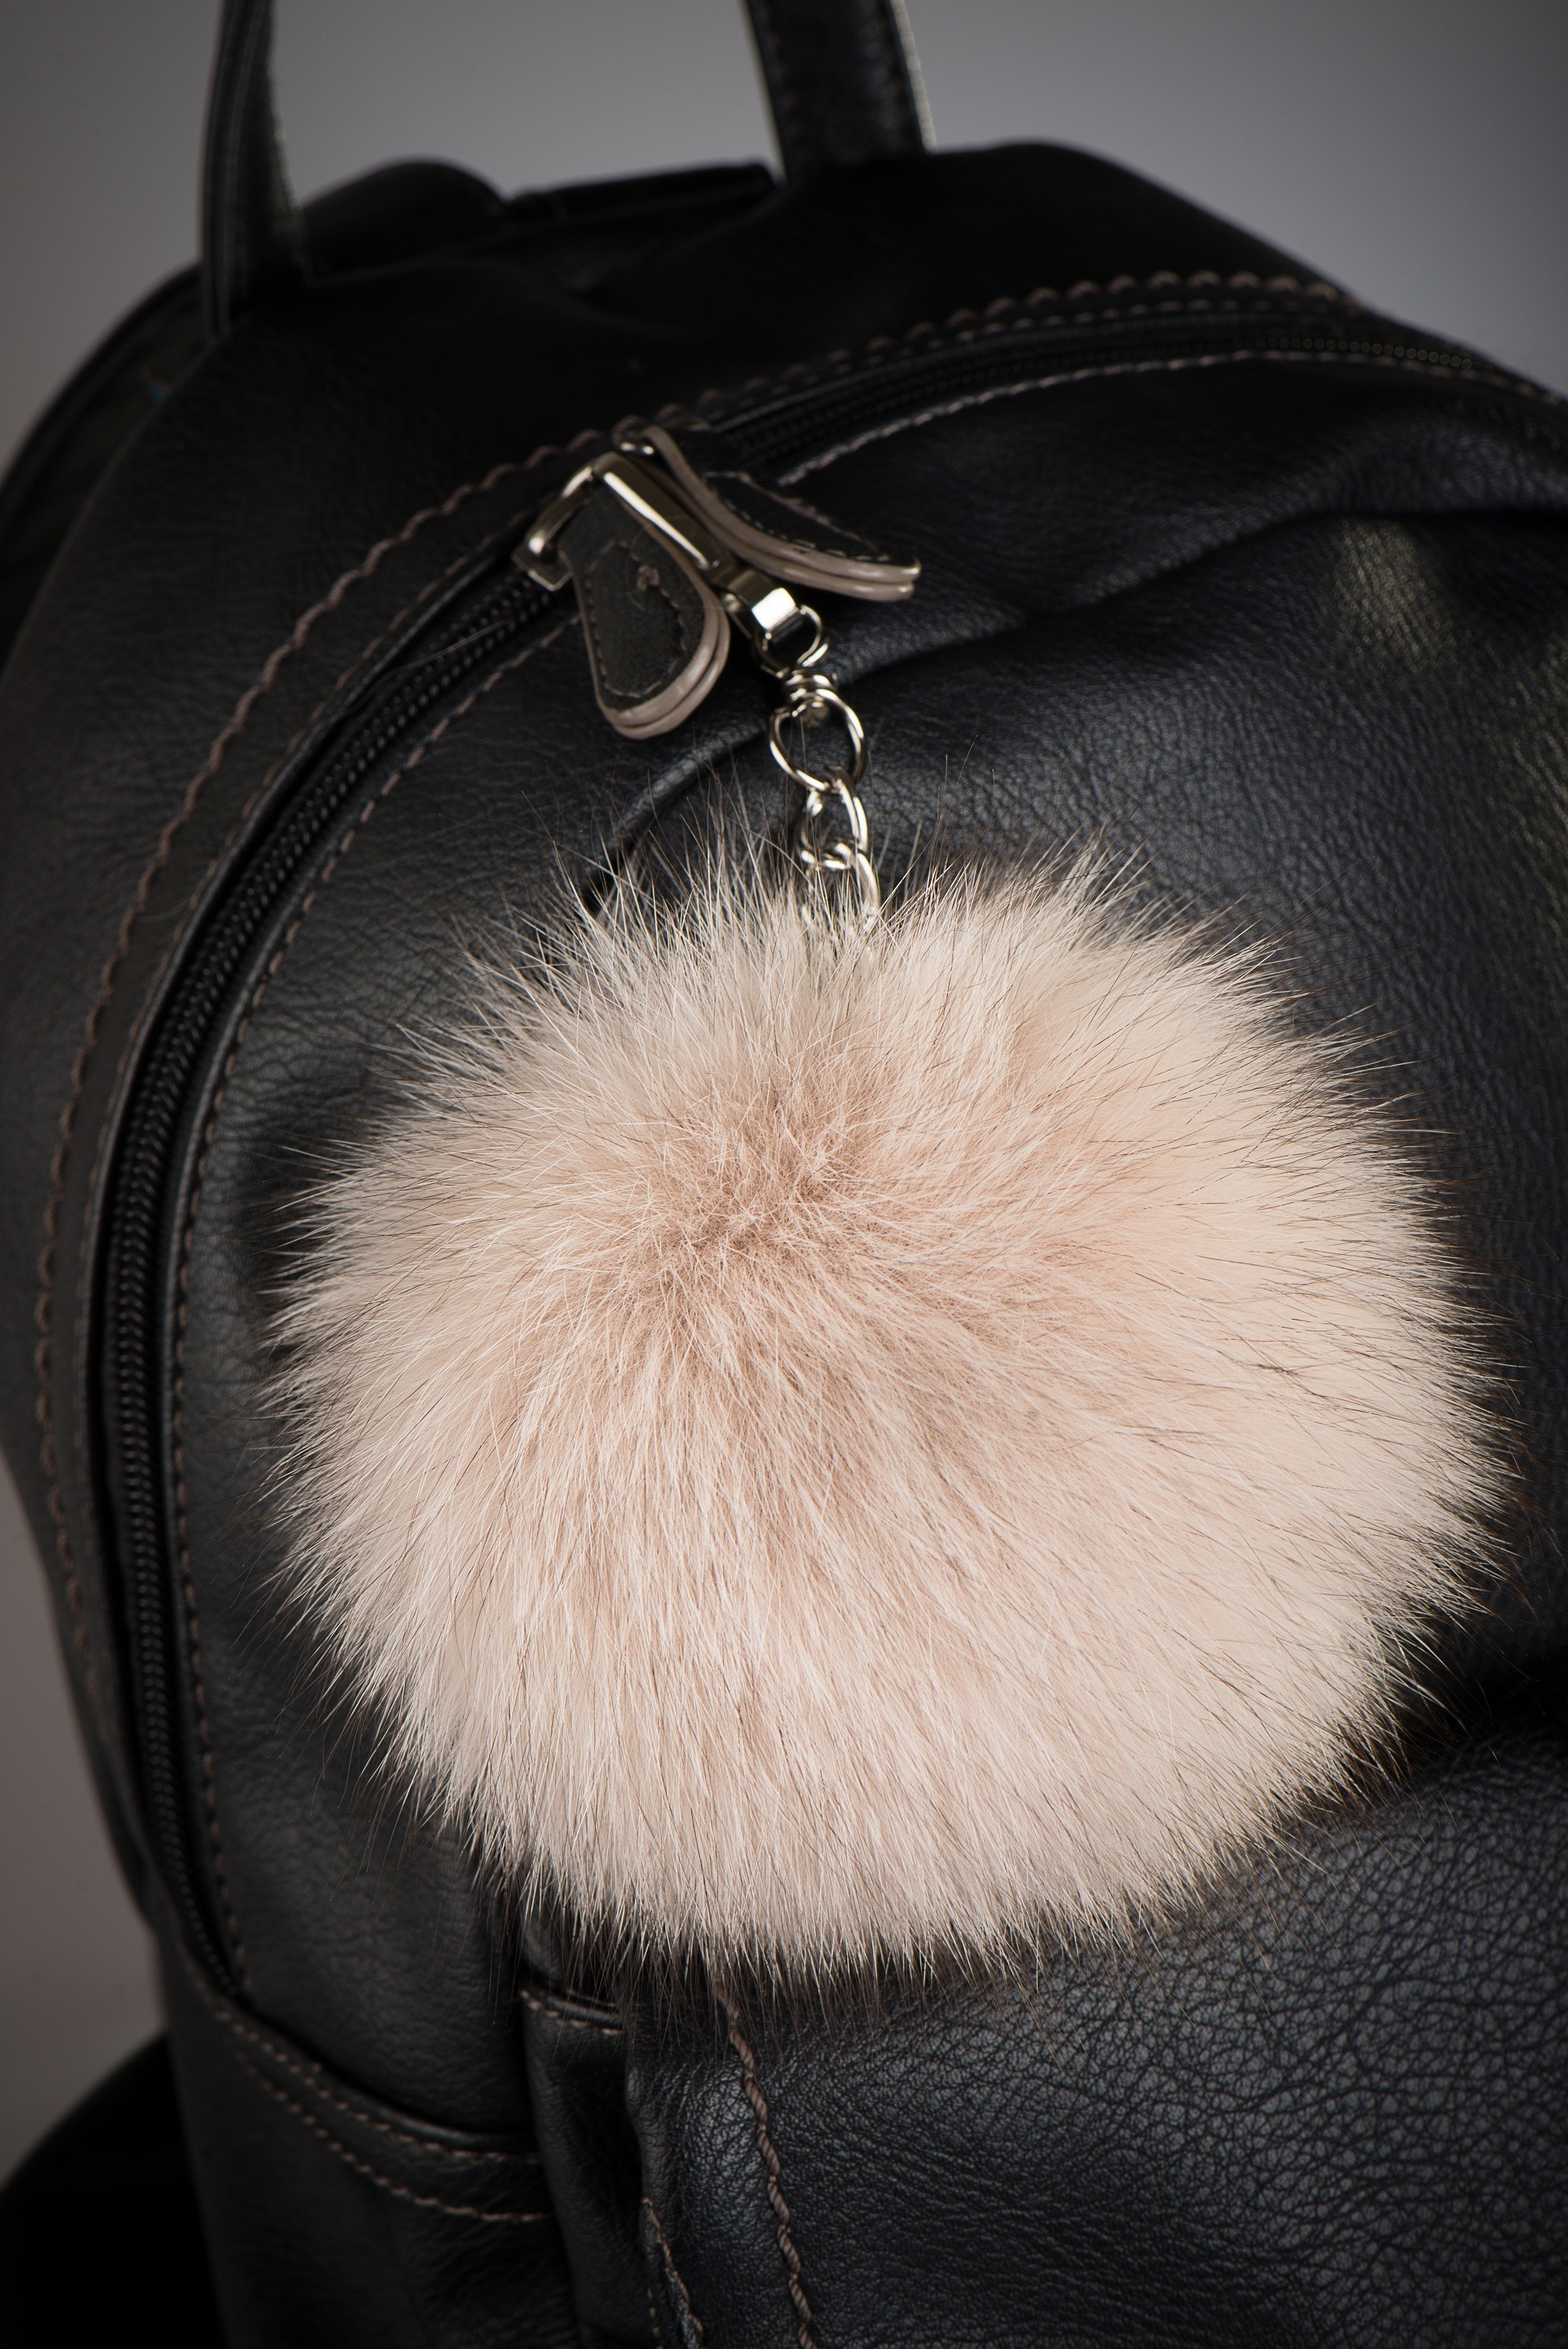 Buy Real Fox Fur Beige Pom Pom Keychain - Pom Fur 909841c6559e5